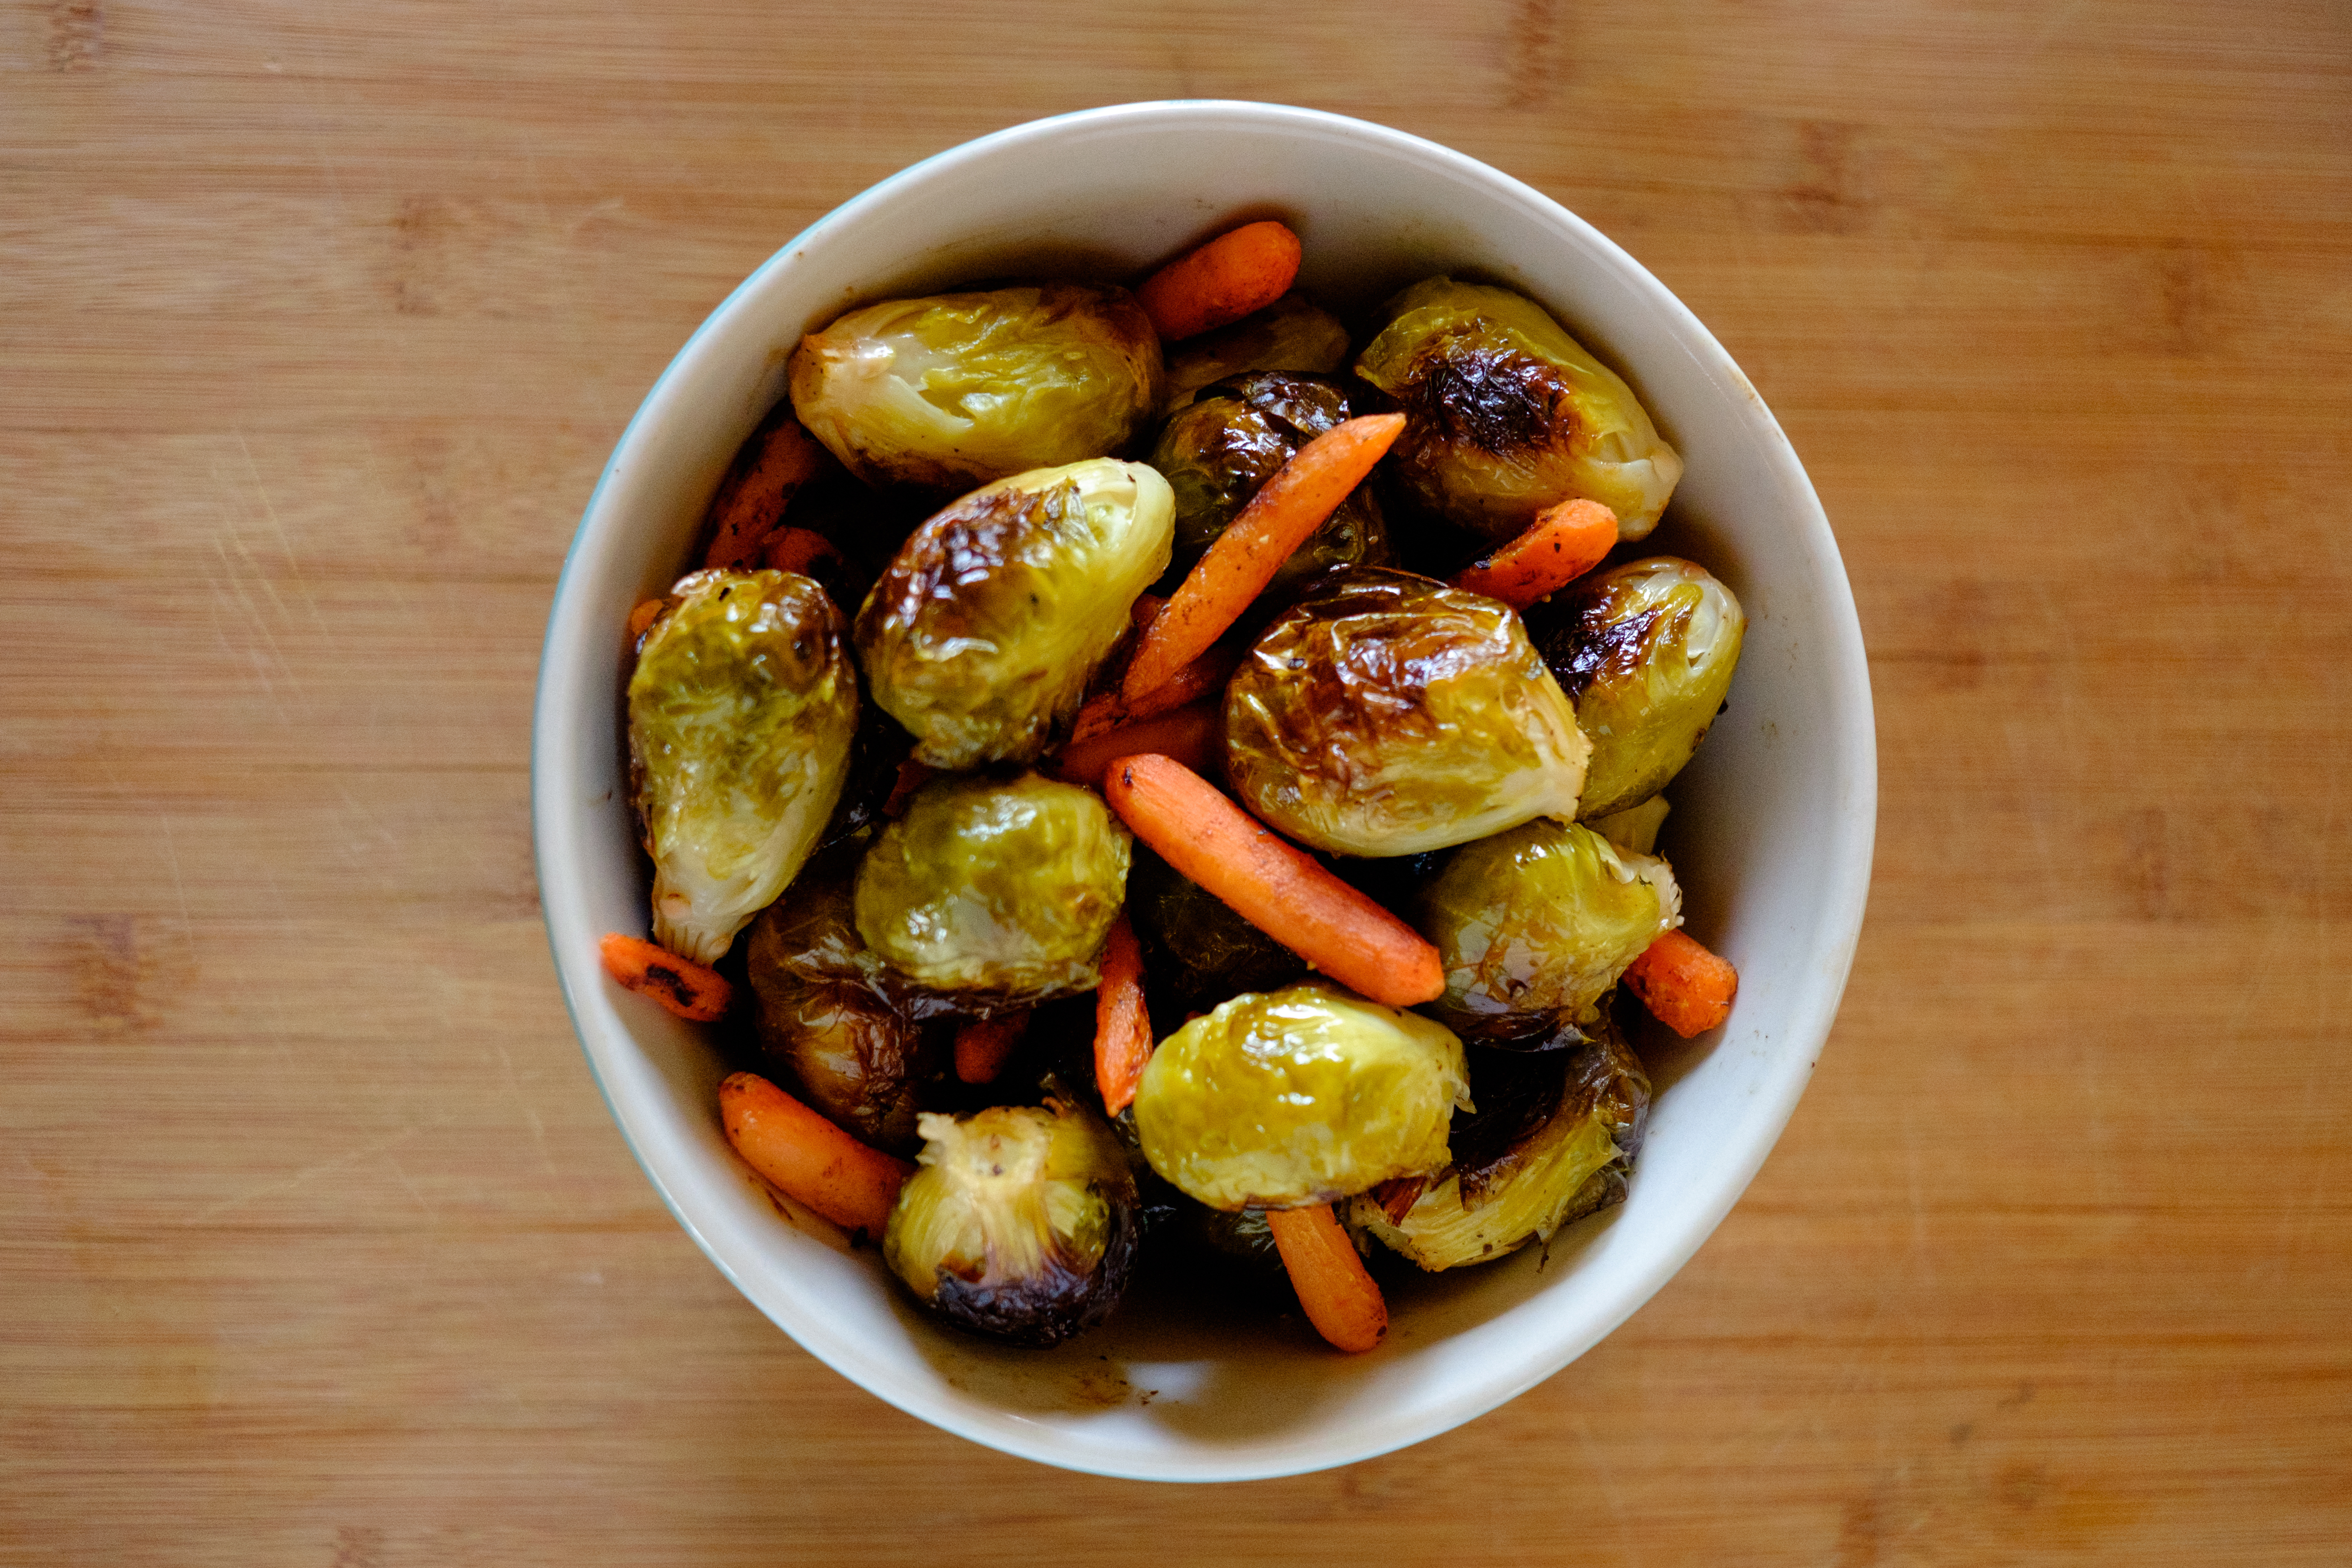 A bowl of delicious and healthy roasted vegetables, including brussel sprouts and carrots.